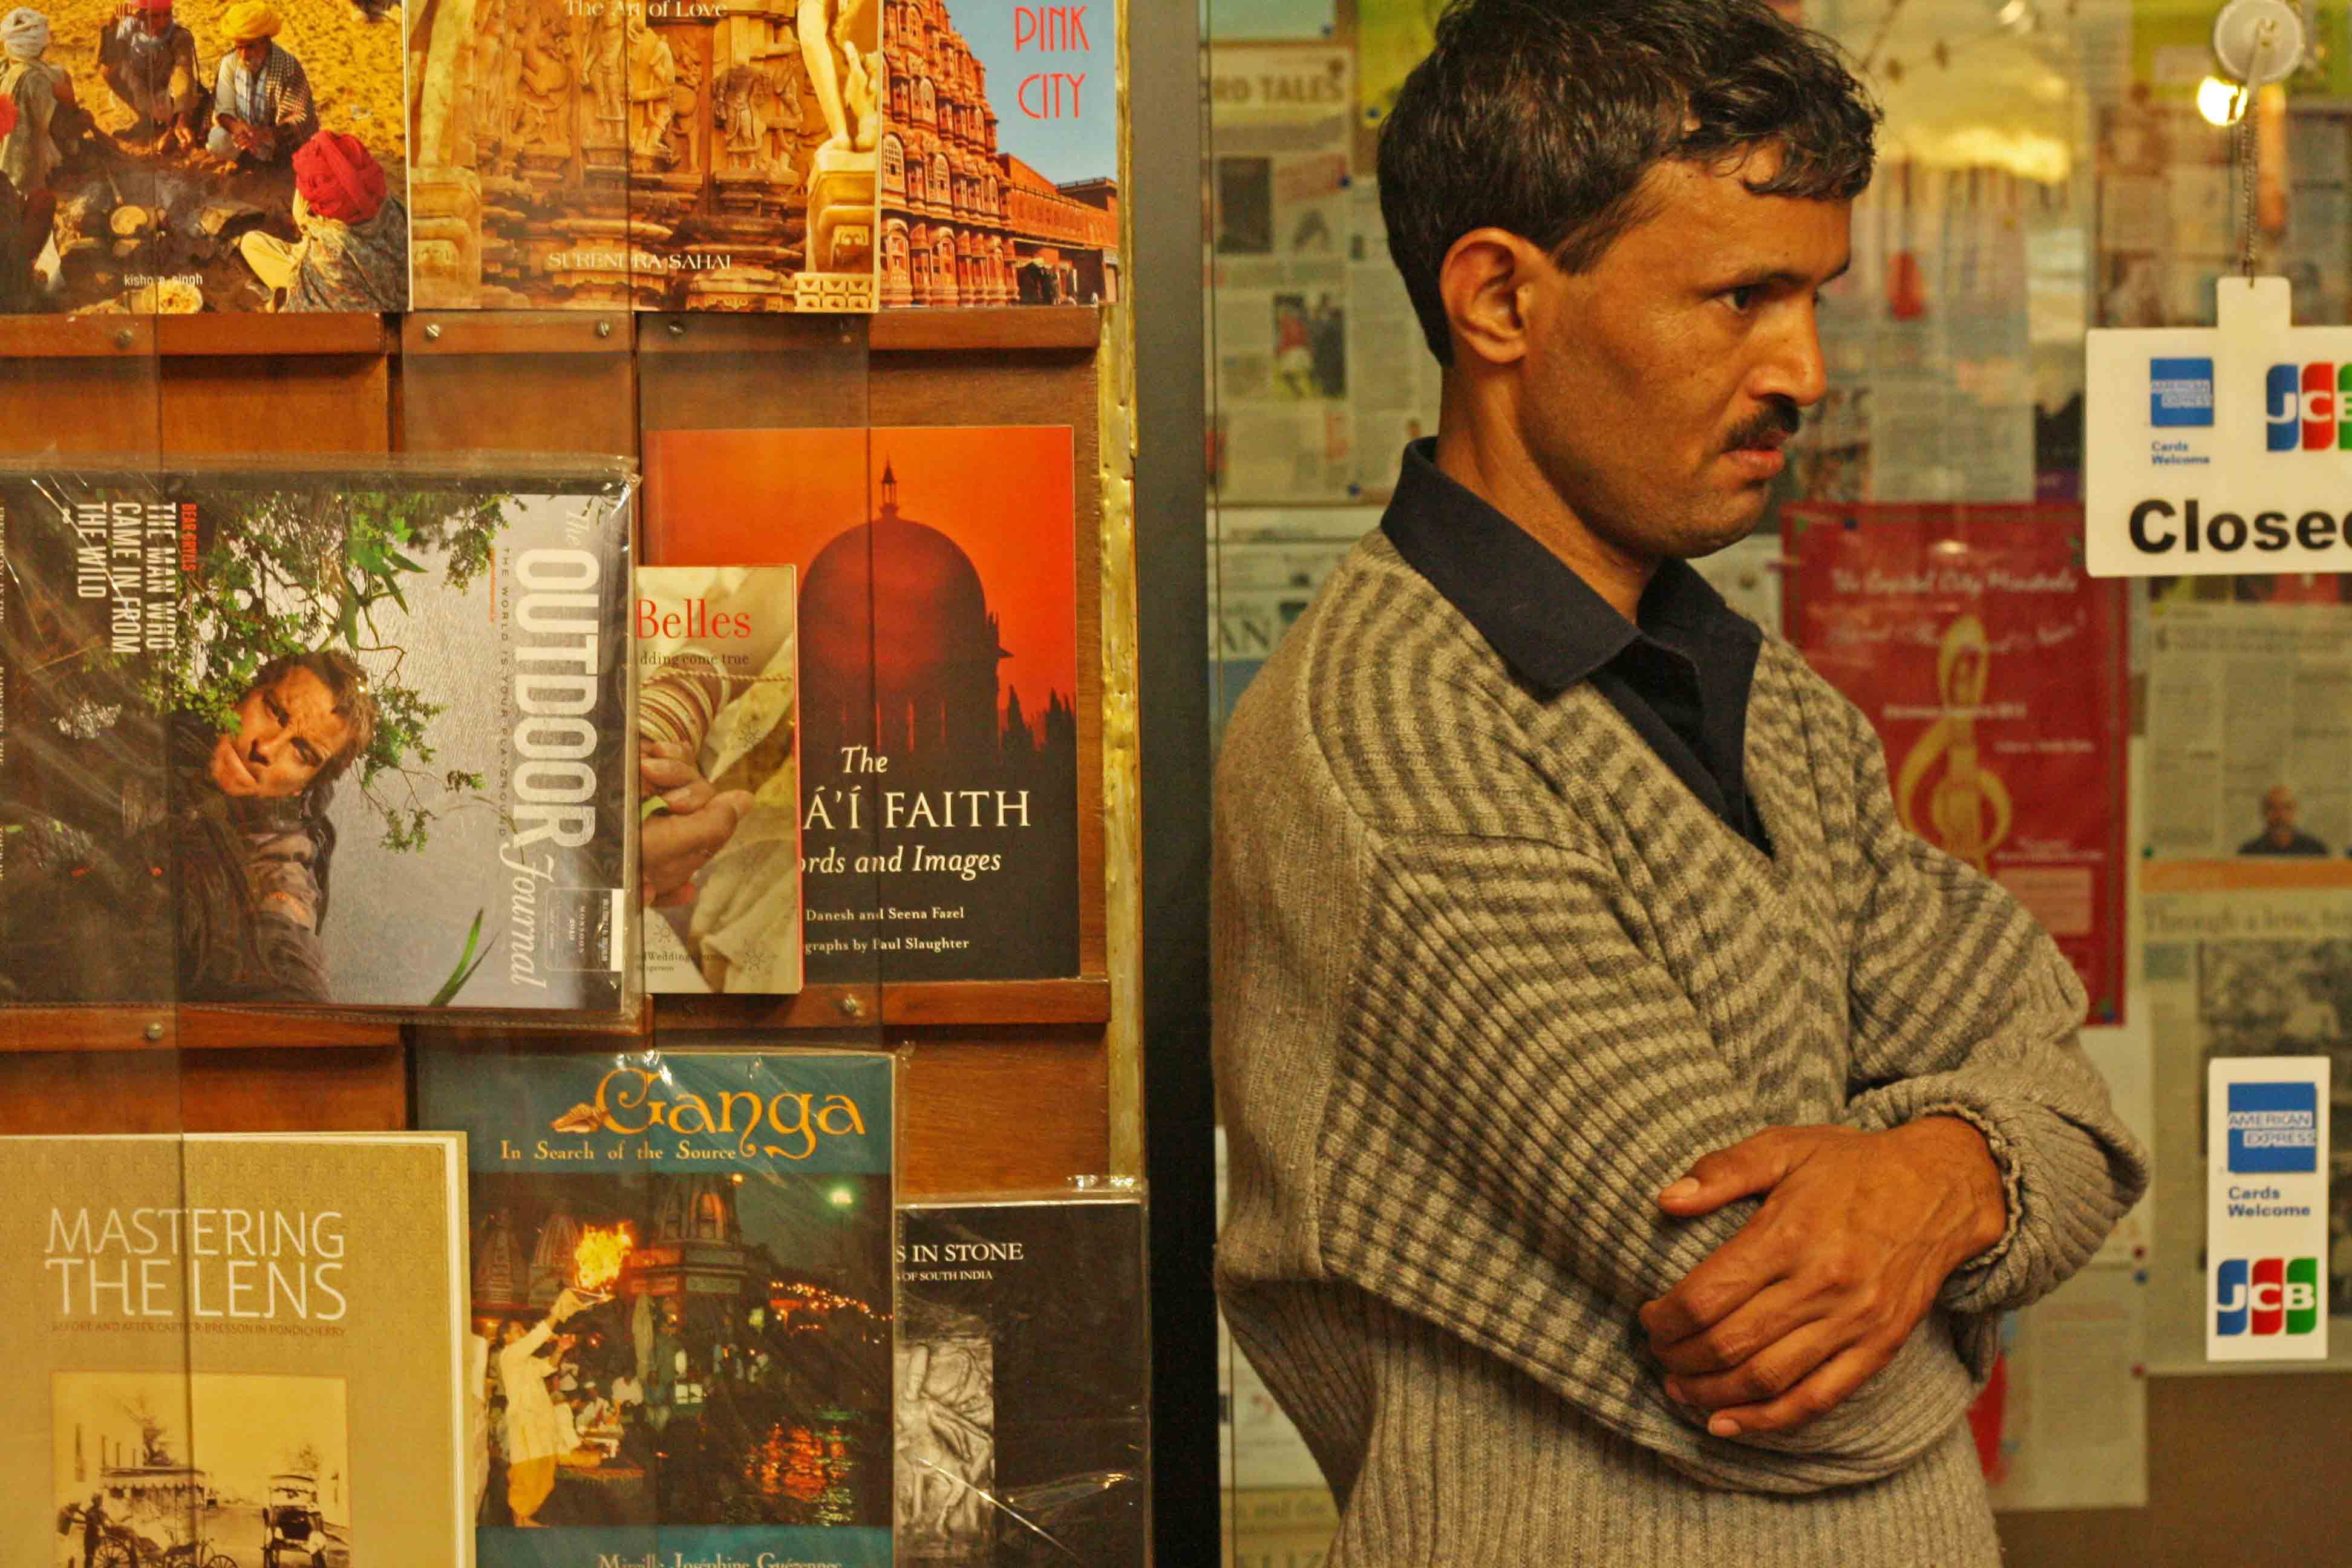 Mission Delhi - Sohan Singh, The Book Shop